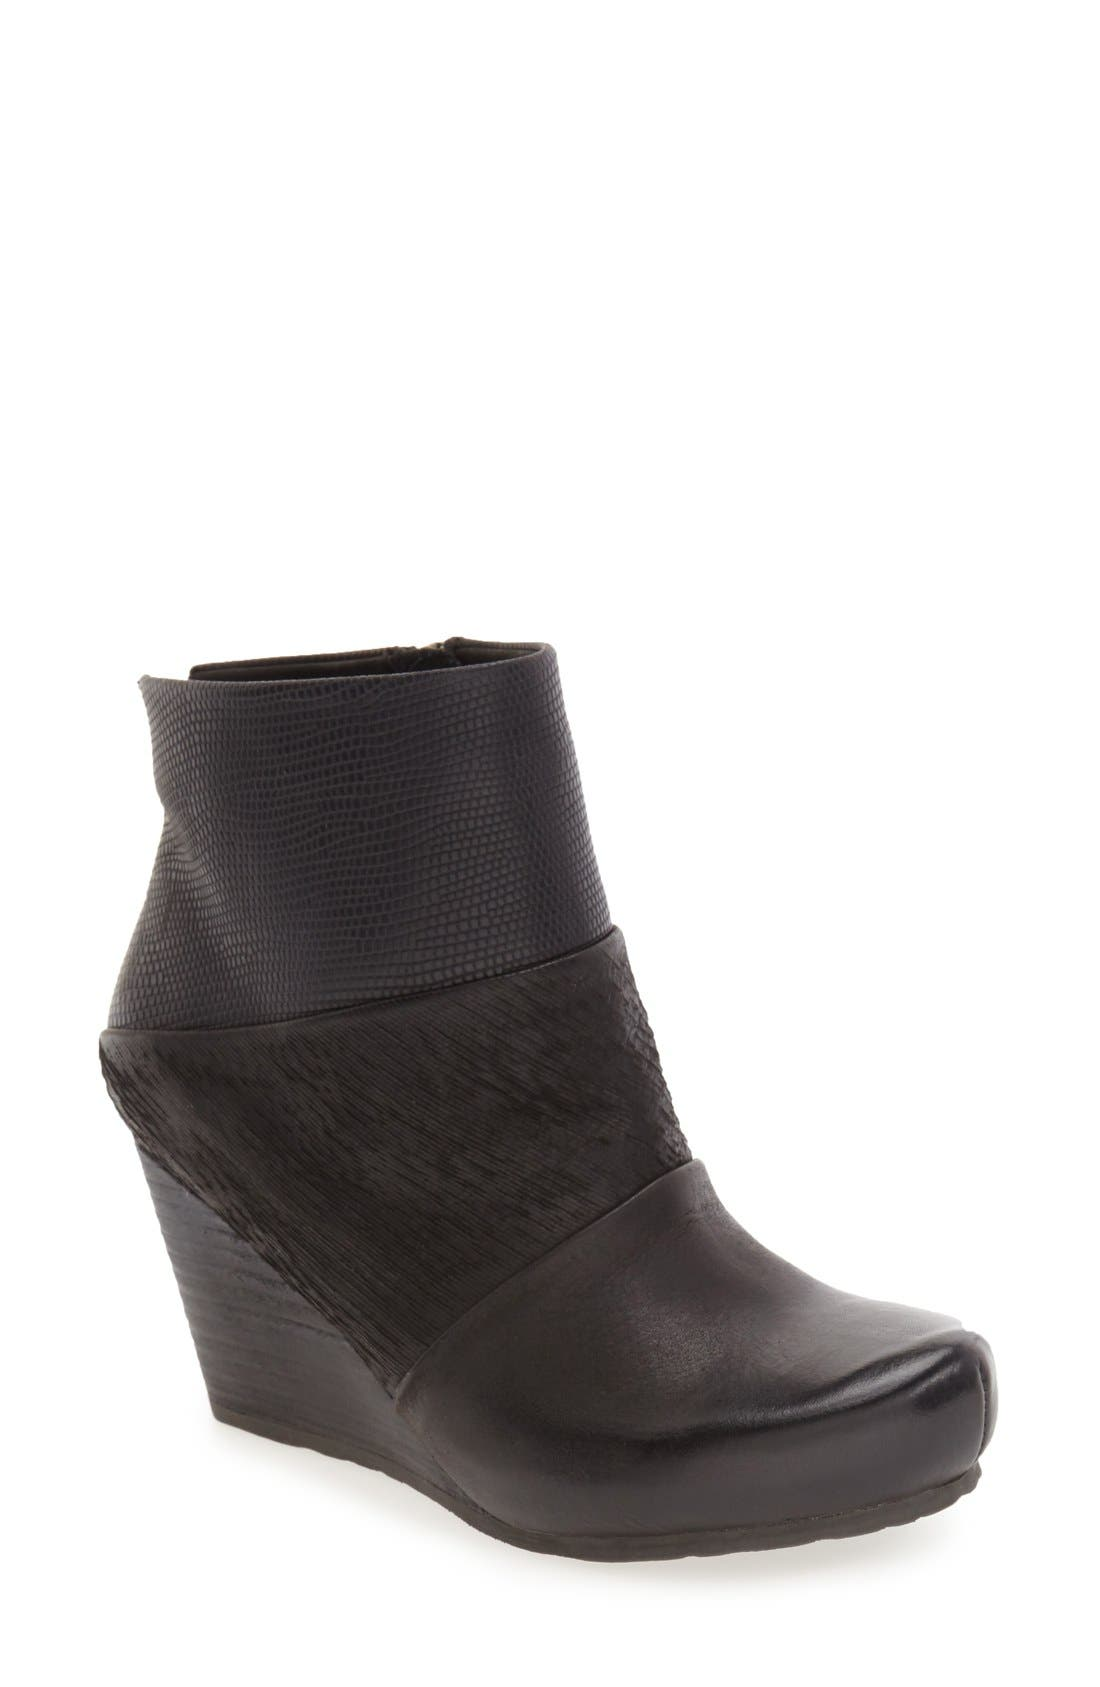 'Dharma' Wedge Bootie,                             Main thumbnail 1, color,                             001